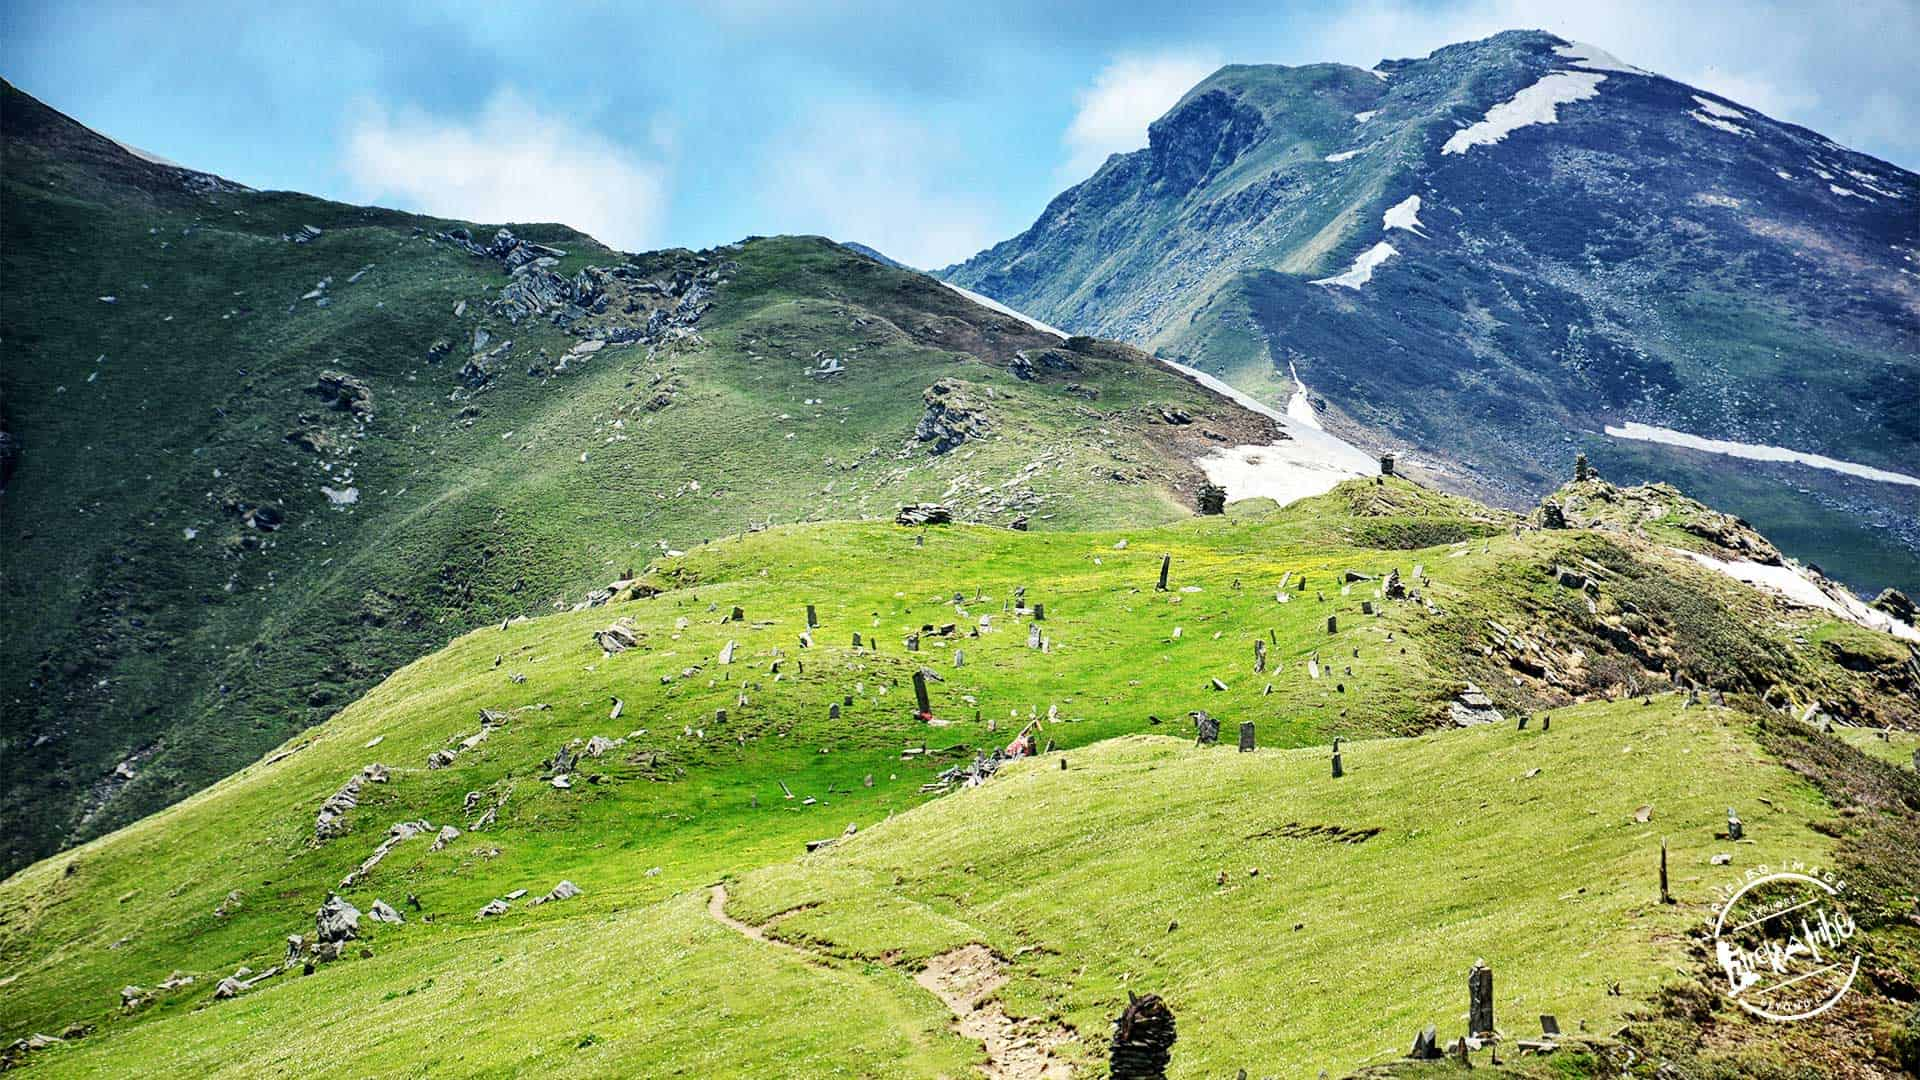 Chandrakhani pass Trek - Garden of Stones